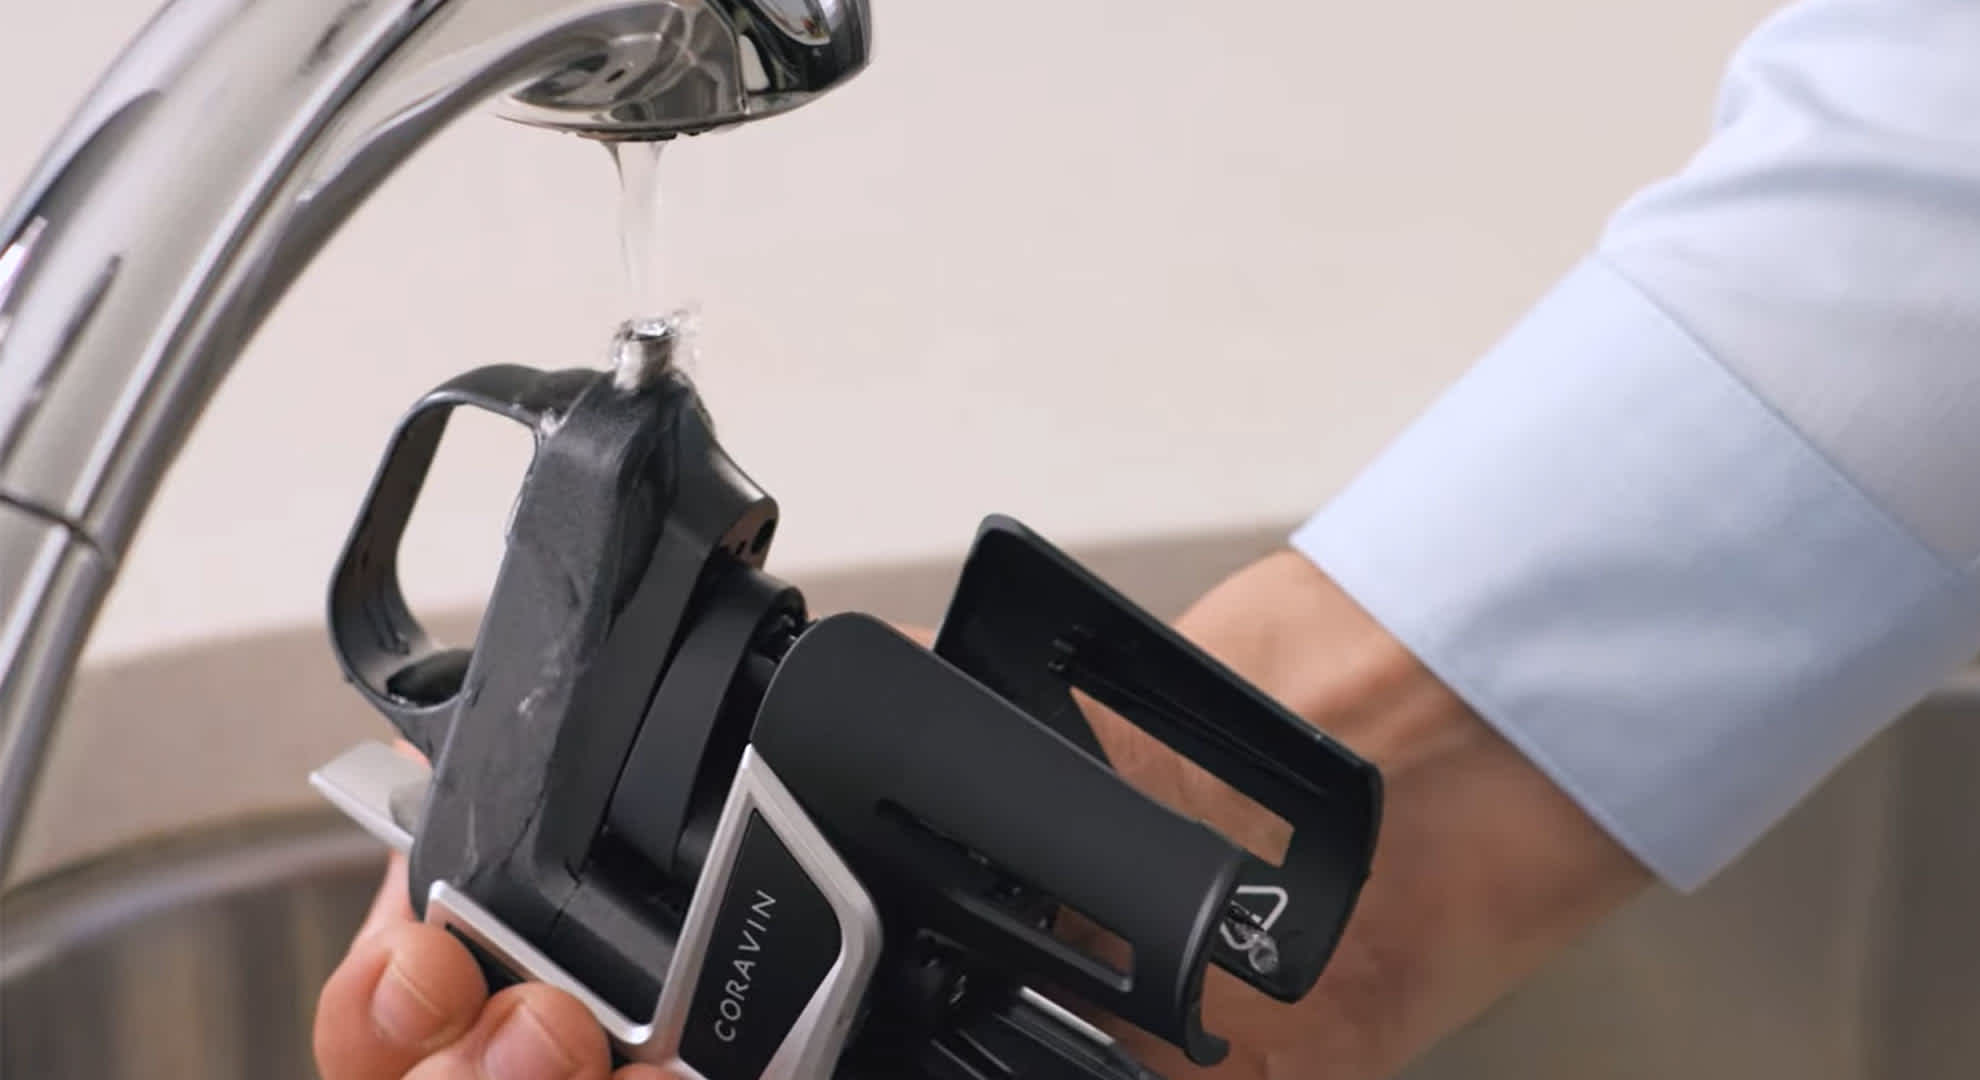 A Coravin Wine Preservation System is held under a running tap